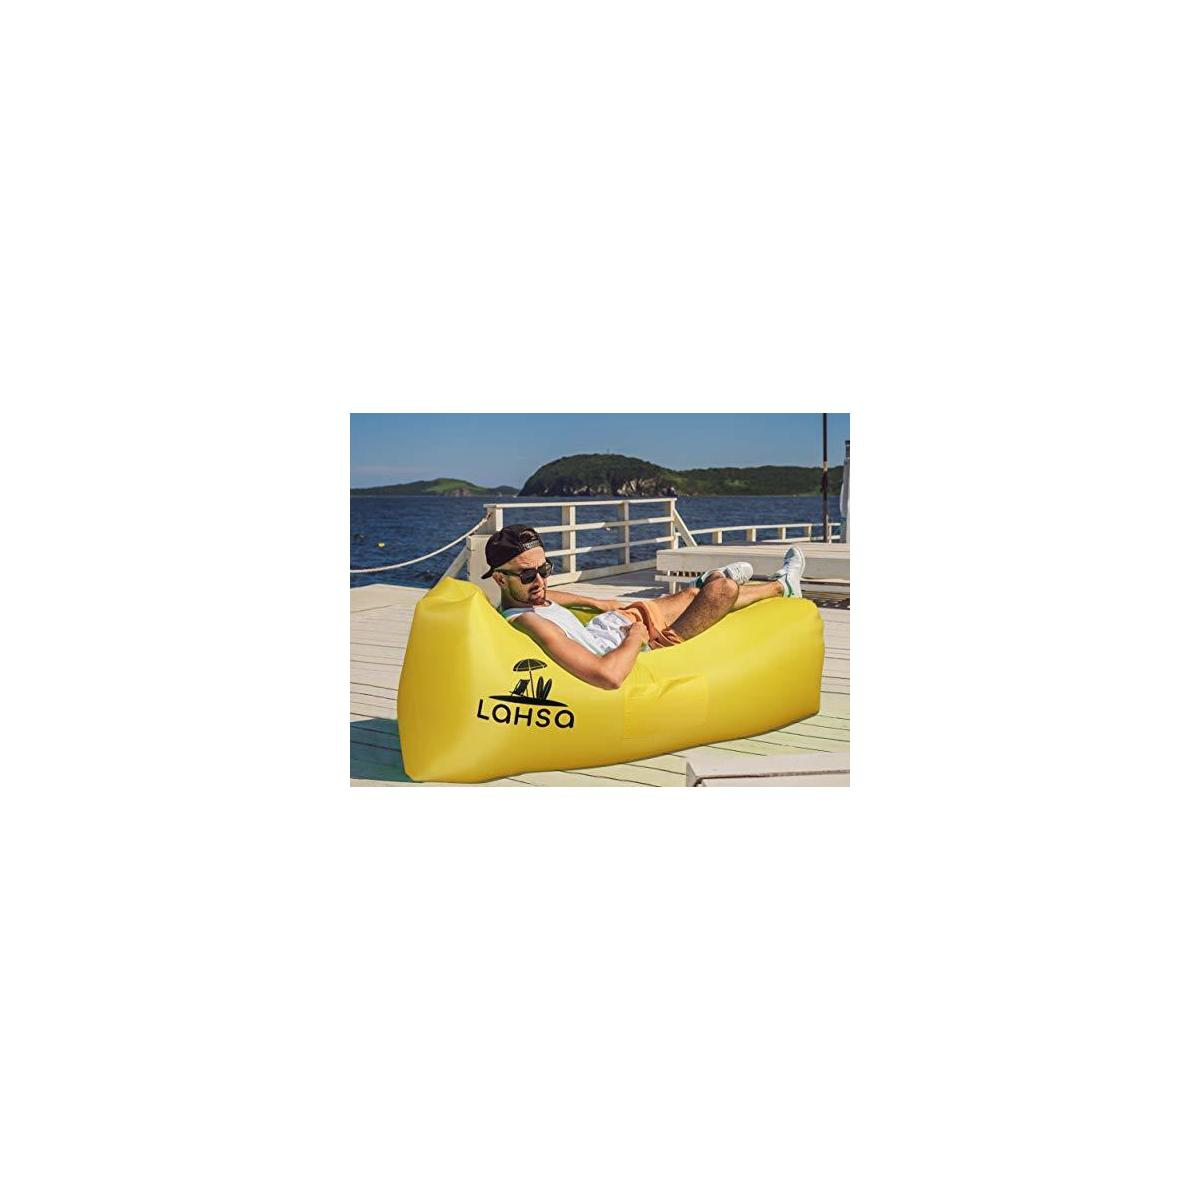 LaHSa Inflatable Lounger Air Sofa Hammock - Ideal Couch for Beach, Pool, Picnic, Backyard, Festivals, Traveling - Inflate in Seconds - Waterproof and Durable - Perfect Air Chair for Hiking and Camping